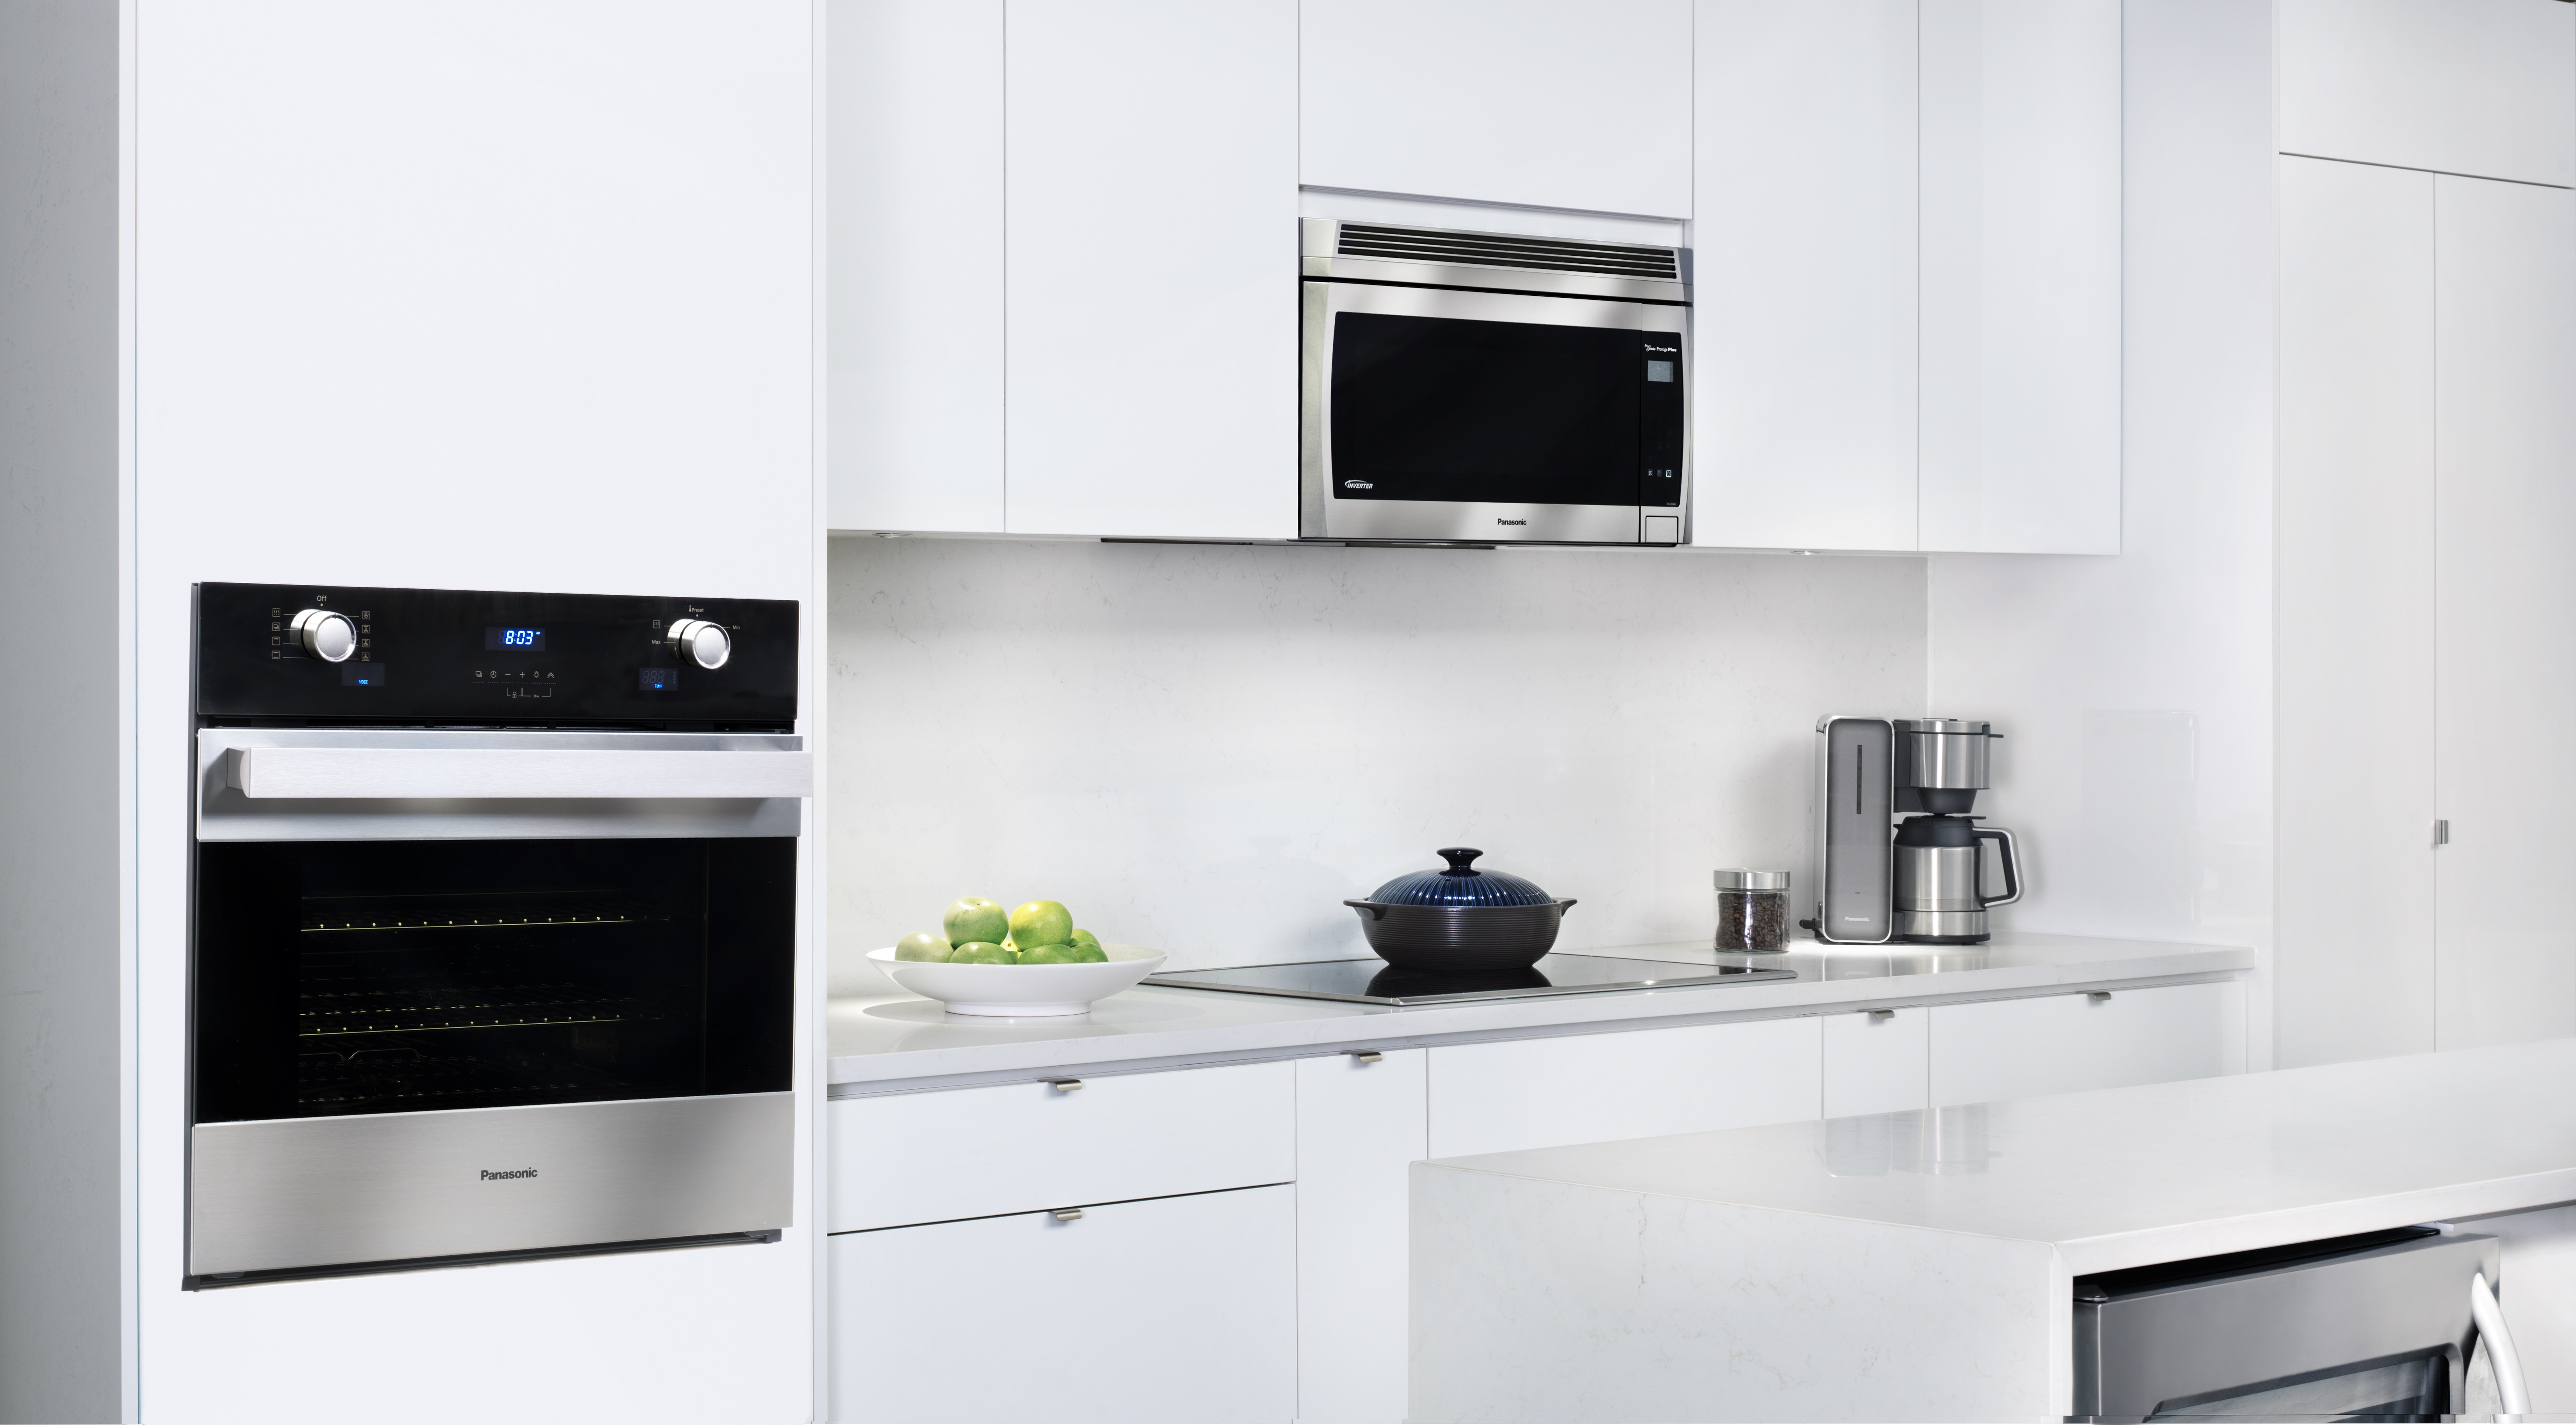 kitchen appliances brooklyn aid walmart design tips for remodeling berry designs